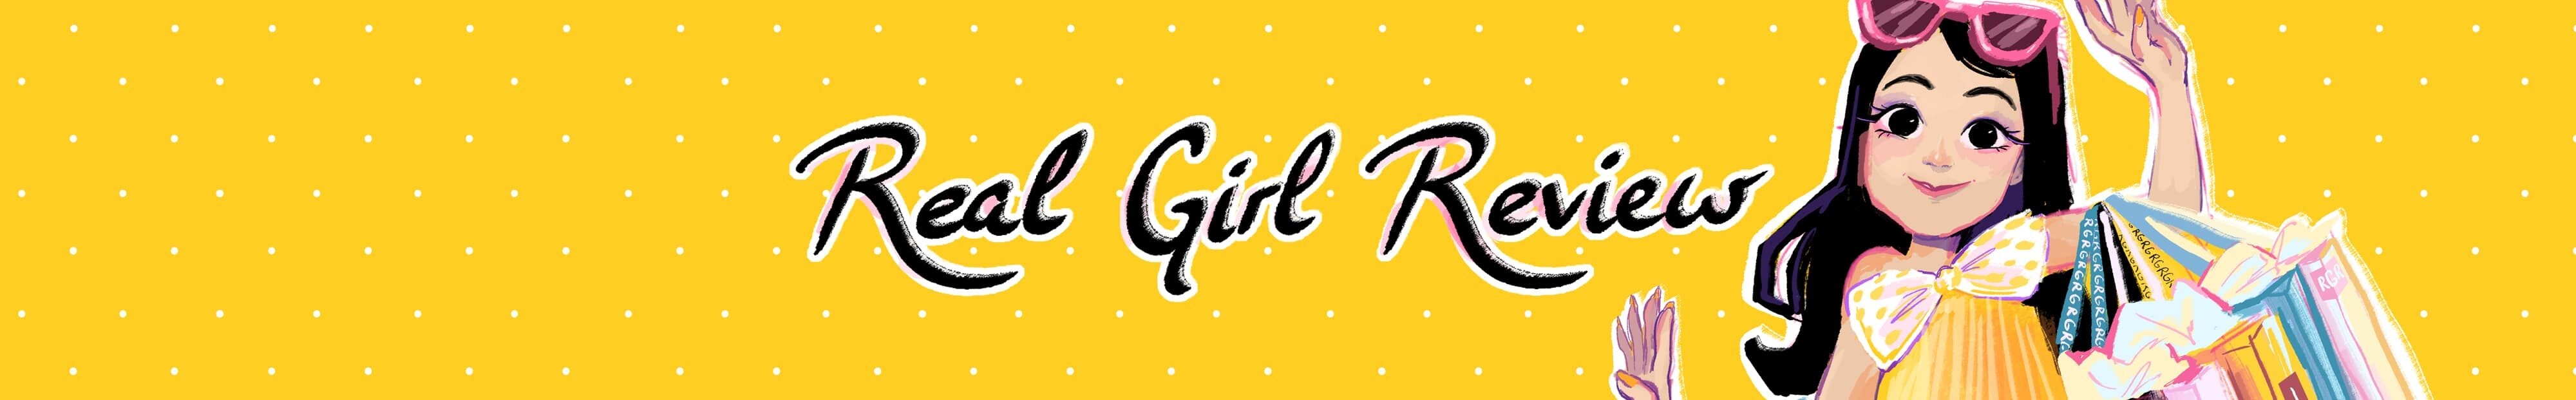 Real Girl Review